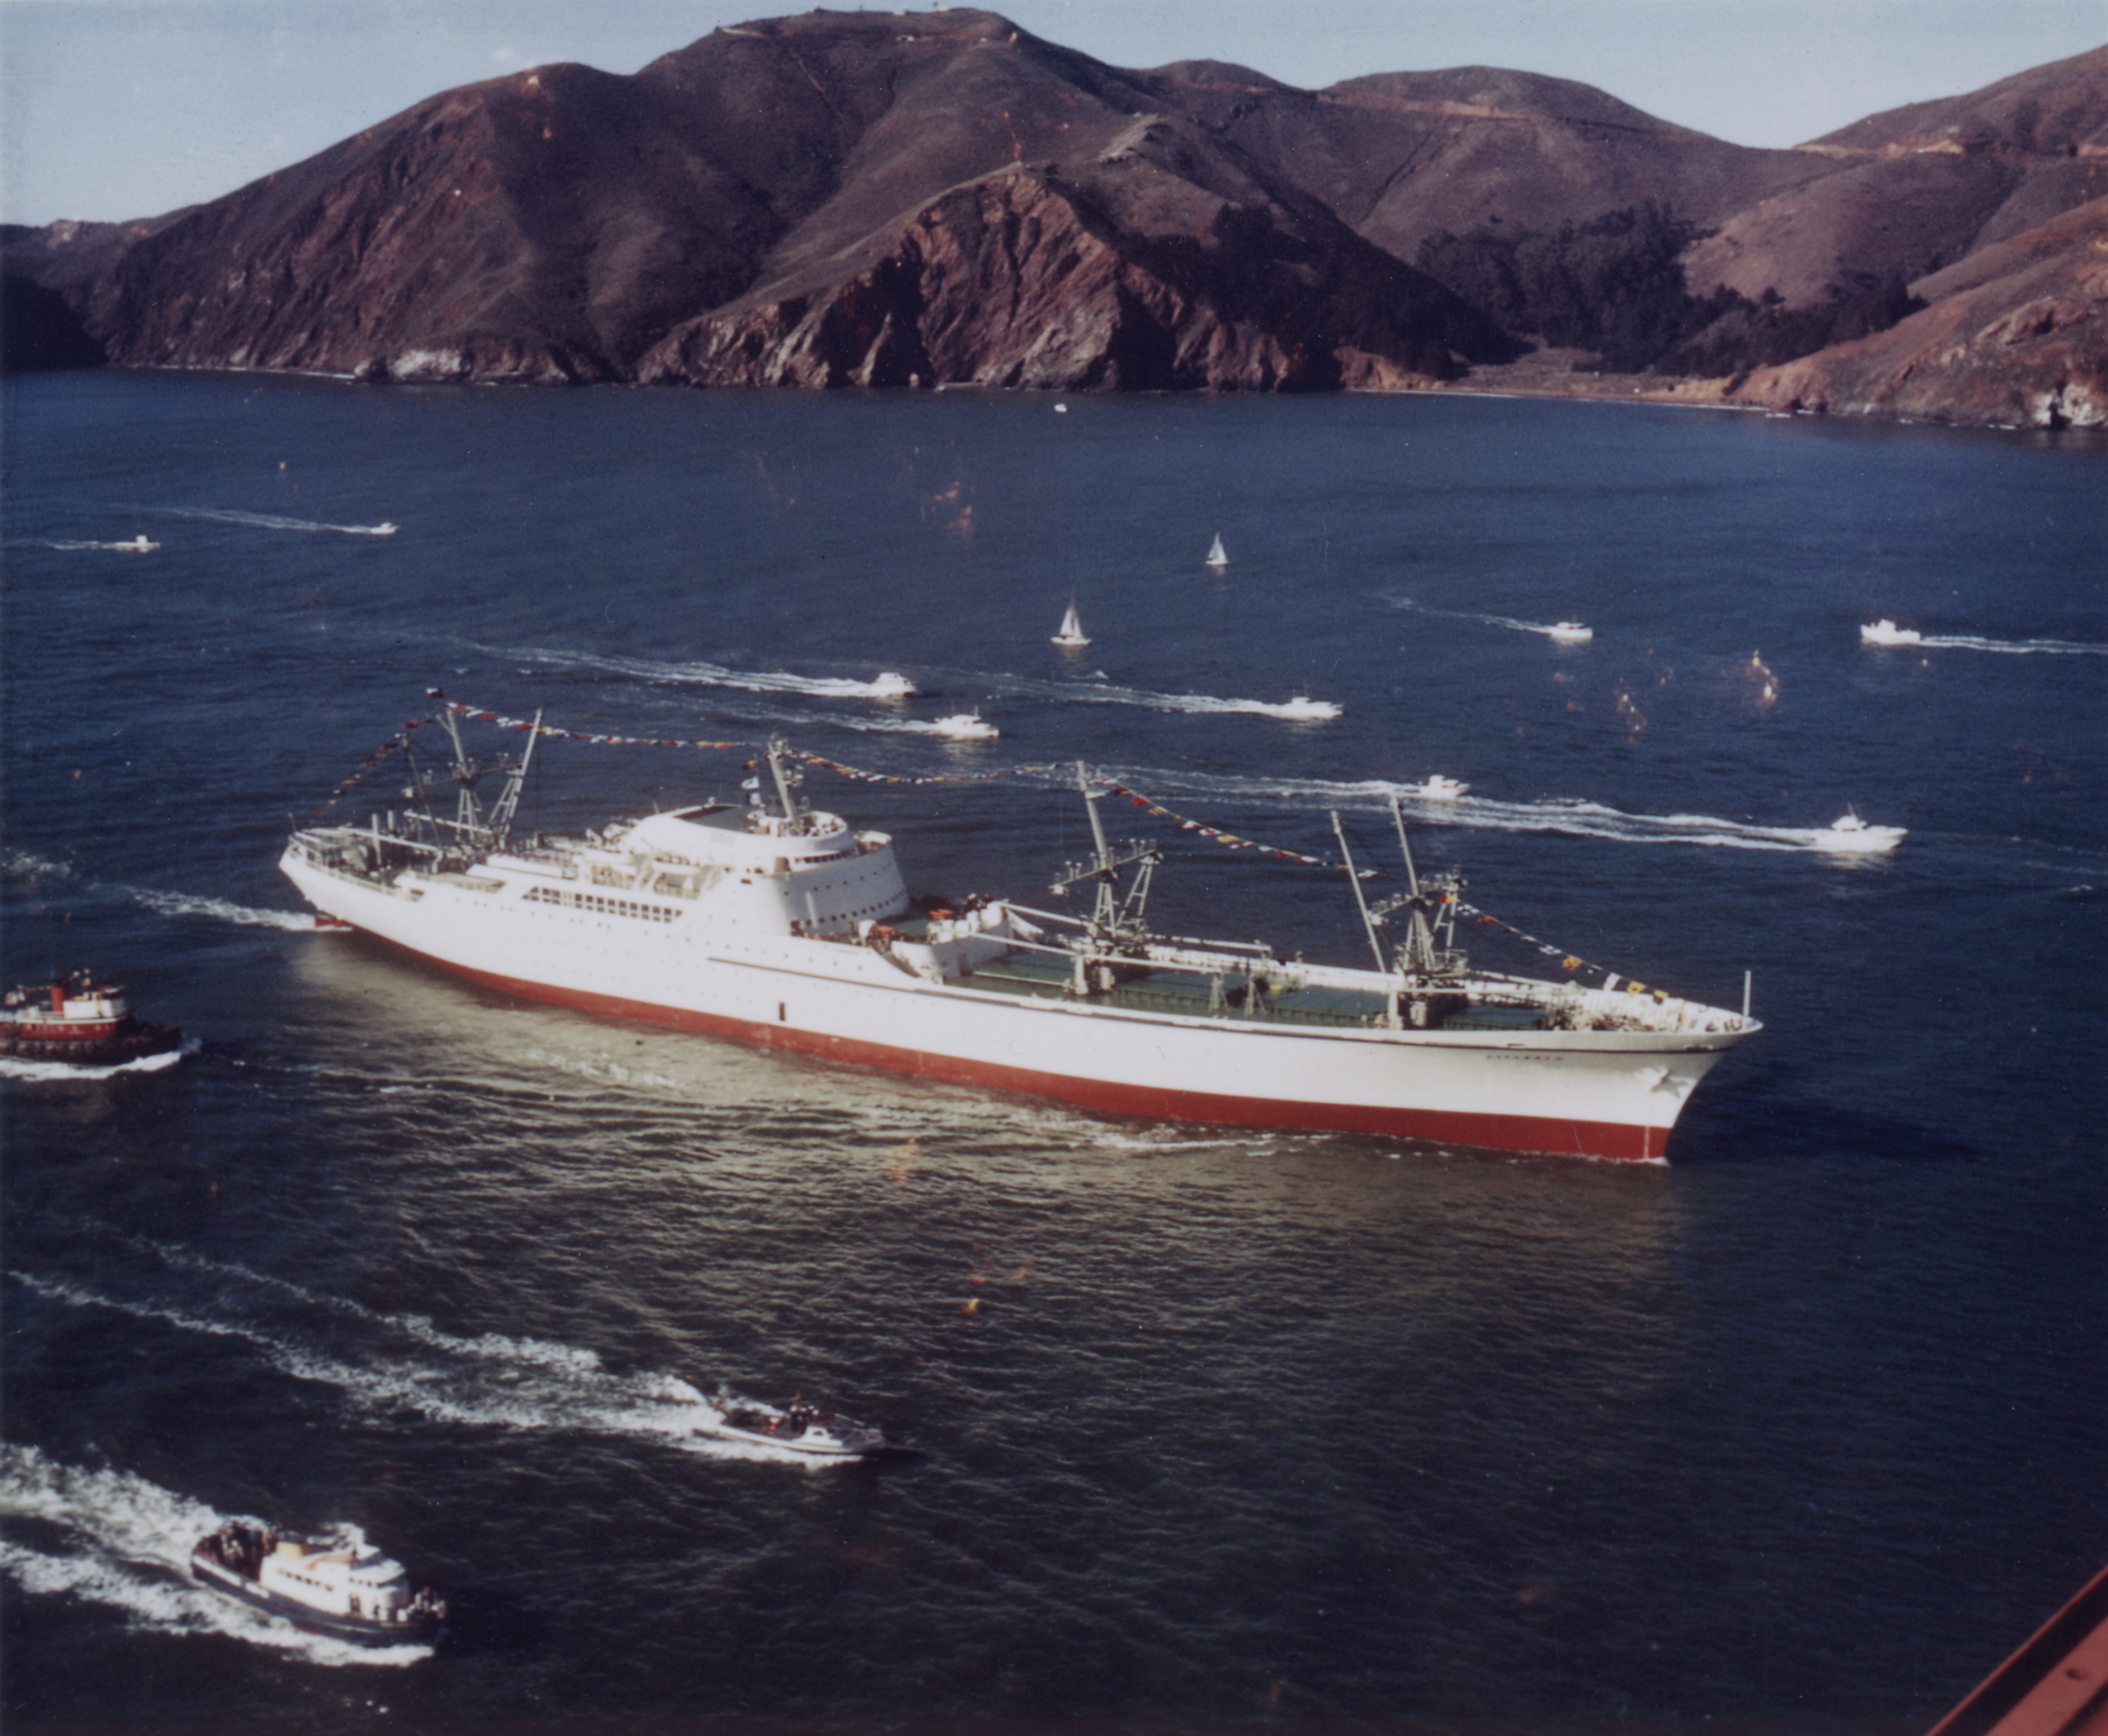 NS (Nuclear Ship) Savannah, the first commercial nuclear power cargo vessel, passes under San Francisco's Golden Gate Bridge en route to the World's Fair in Seattle, 1962..